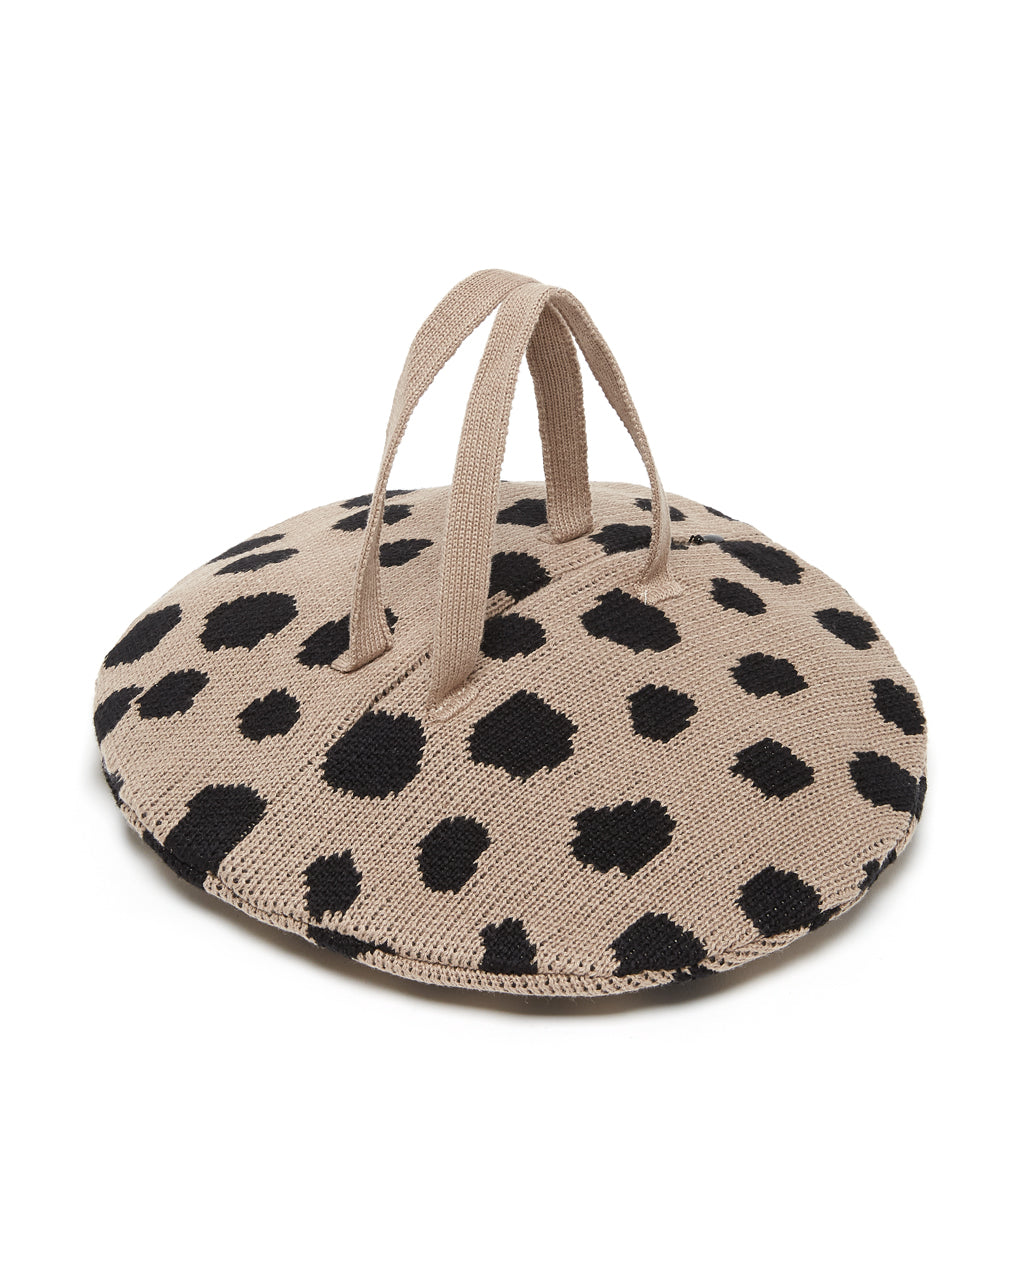 round beige bag with black dots, in knit material with hidden zipper and two straps